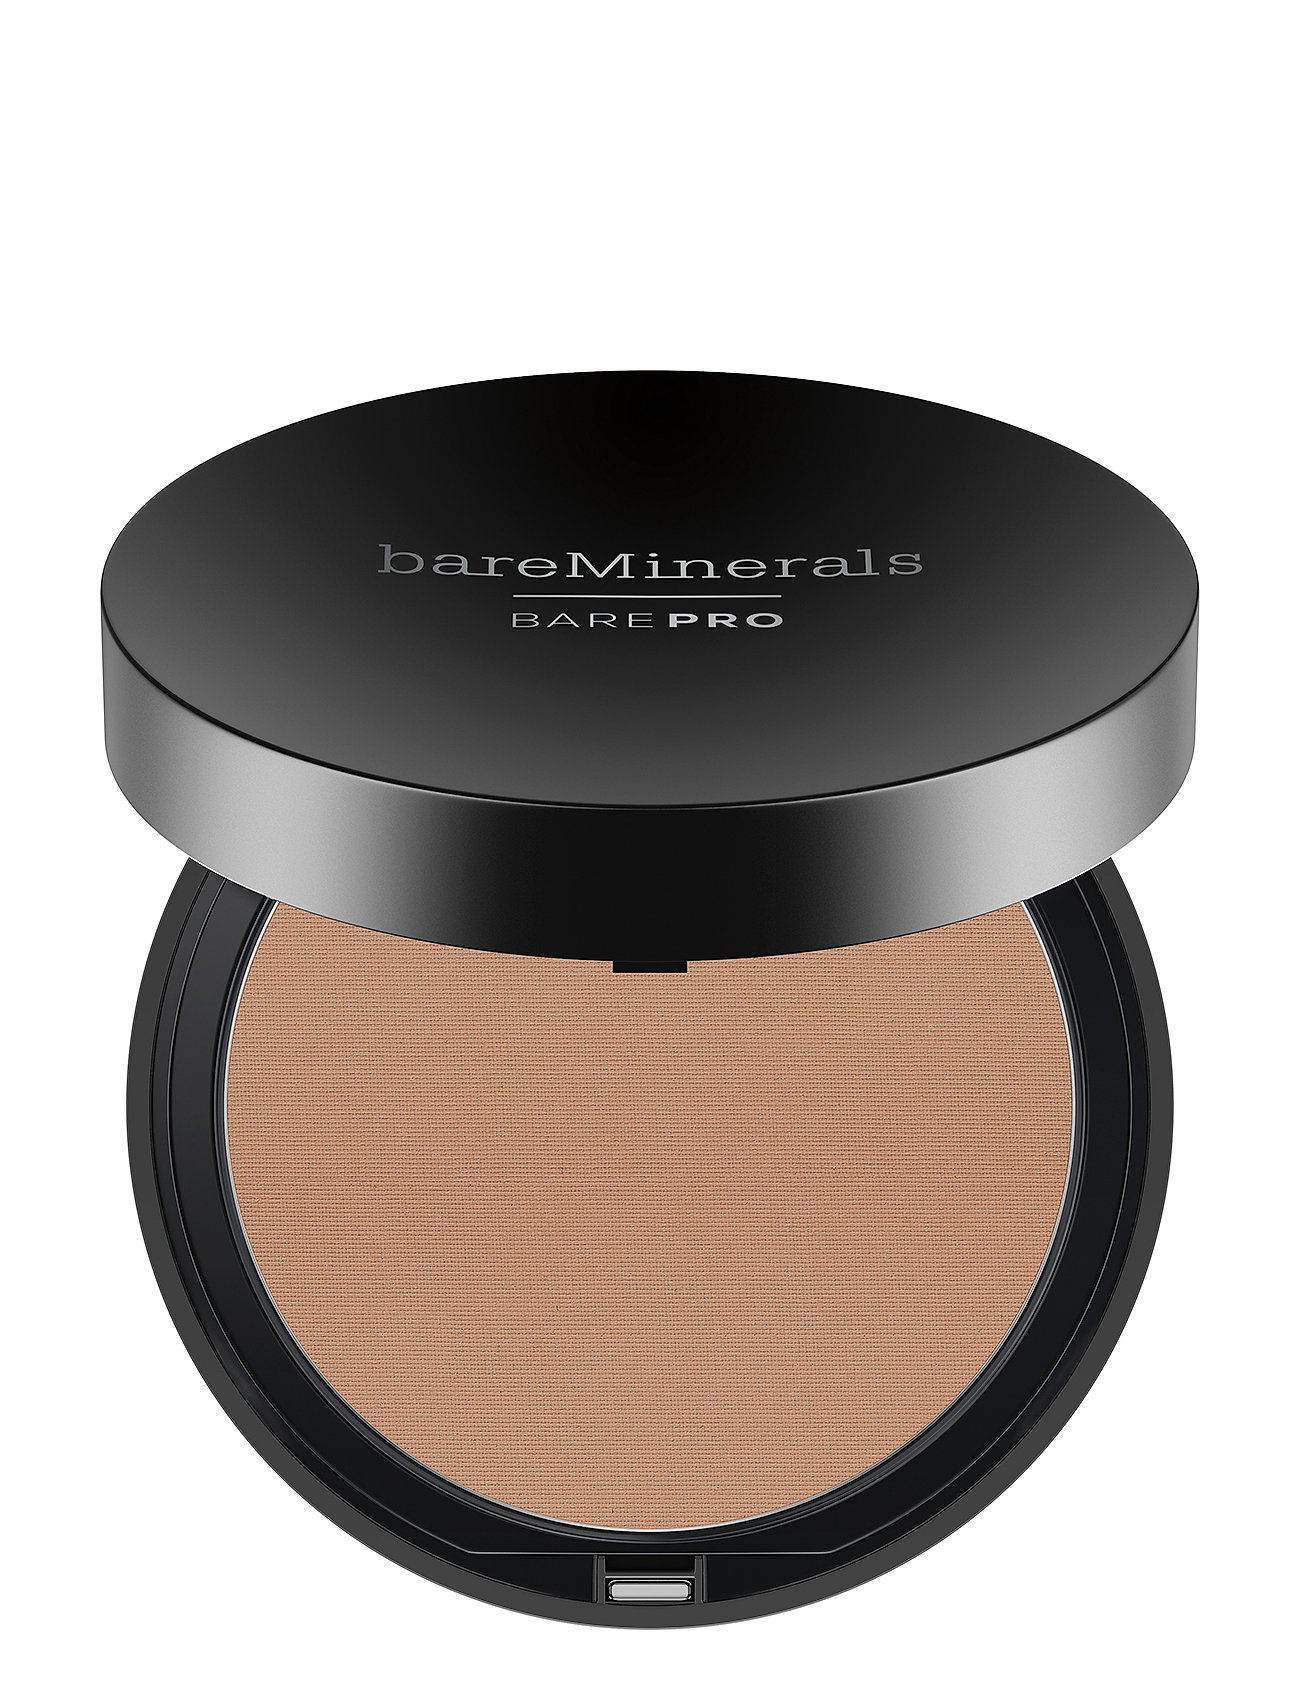 Image of Barepro Performance Wear Powder Foundation Foundation Makeup BareMinerals (3251433713)